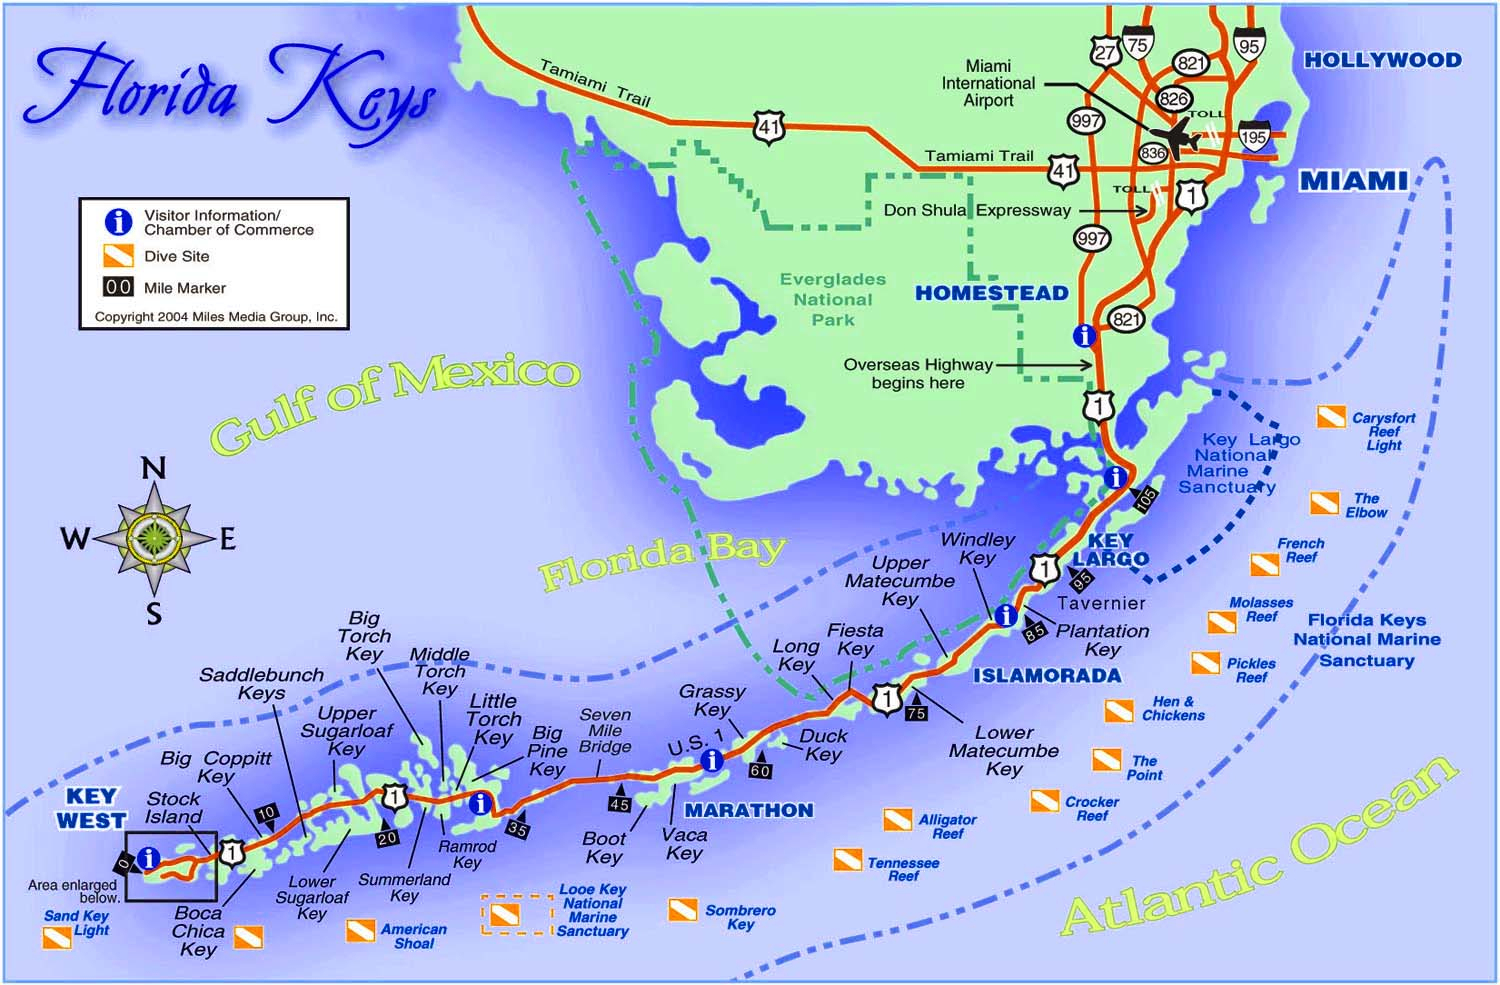 Best Florida Keys Beaches Map And Information - Florida Keys - Islamorada Florida Map